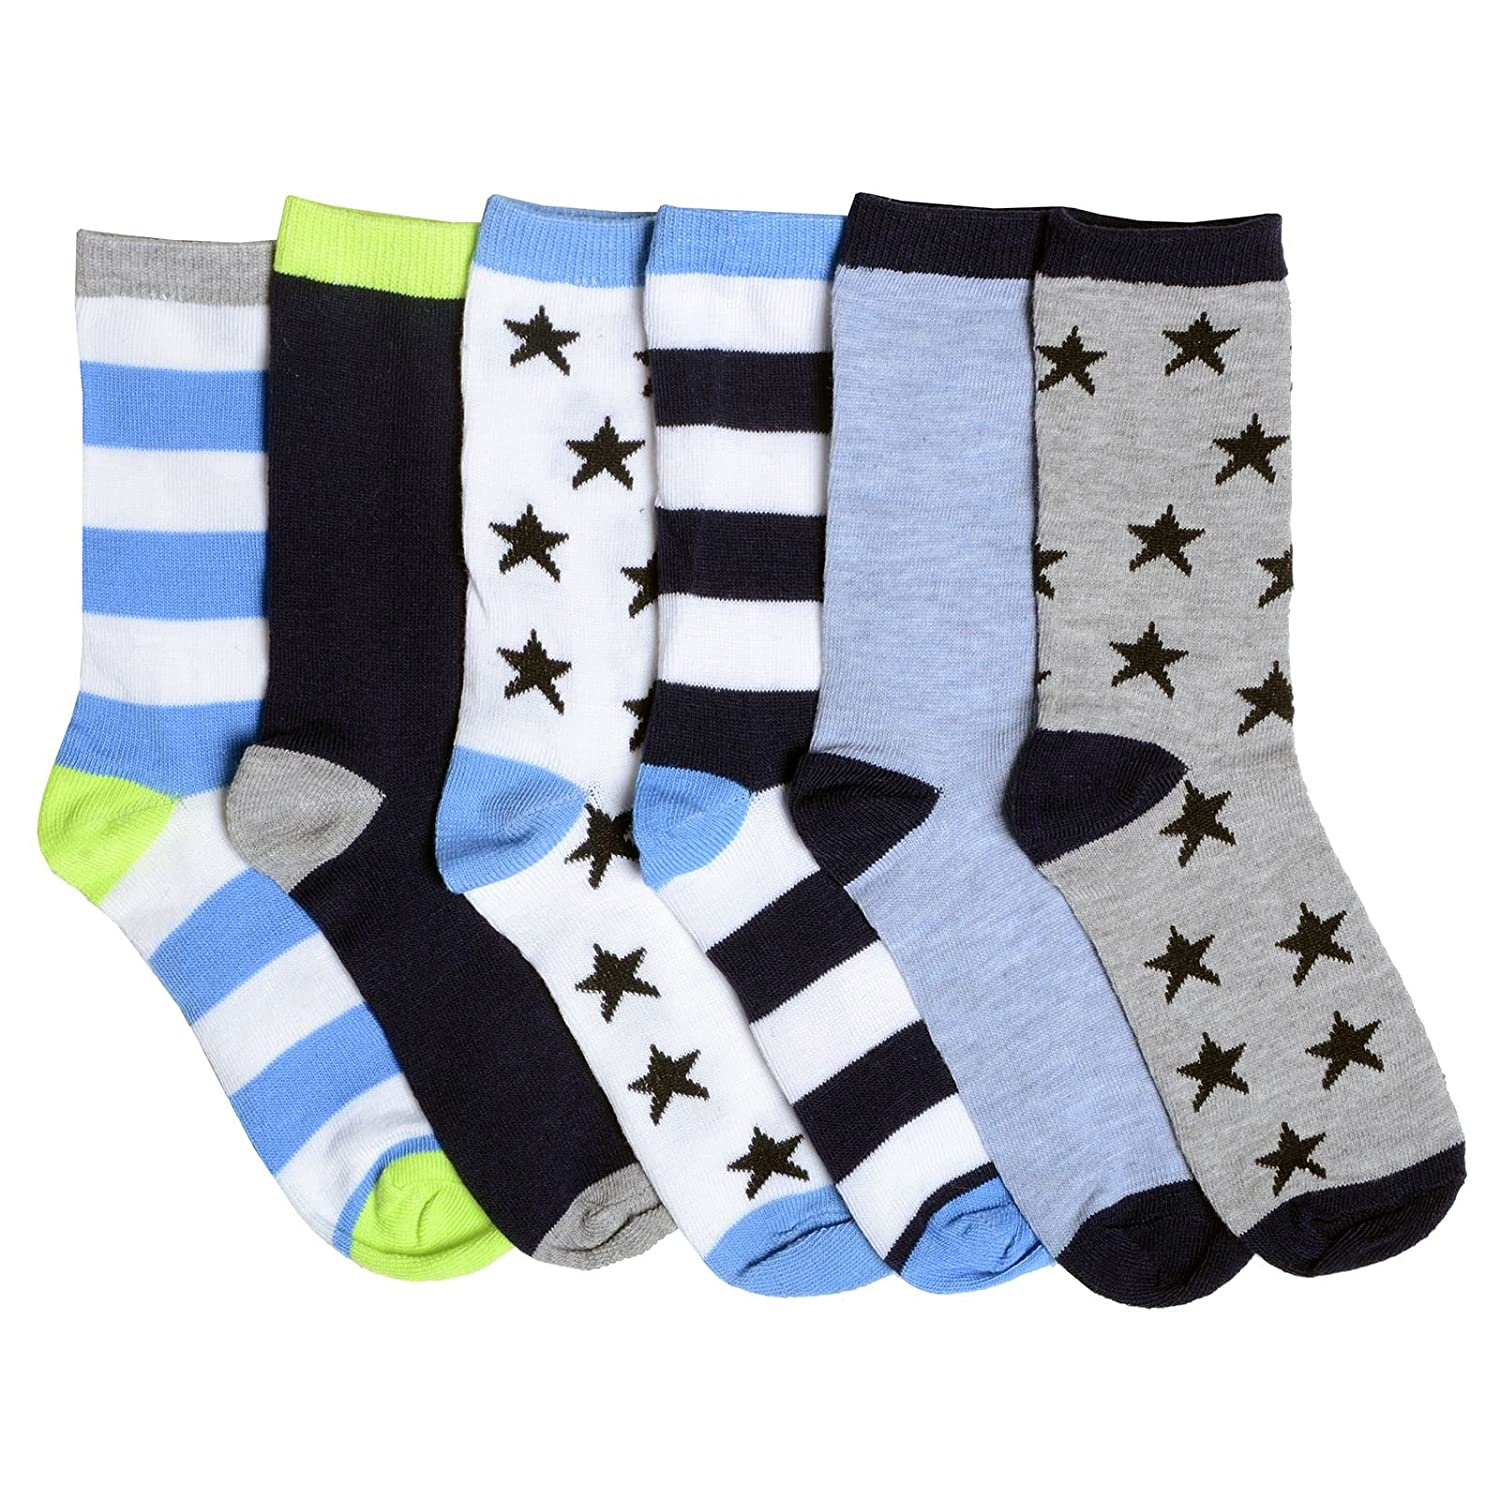 6 Pairs Of Boys Everyday Socks In Assorted Star & Stripe Blue & Grey Coloured Styles RJM